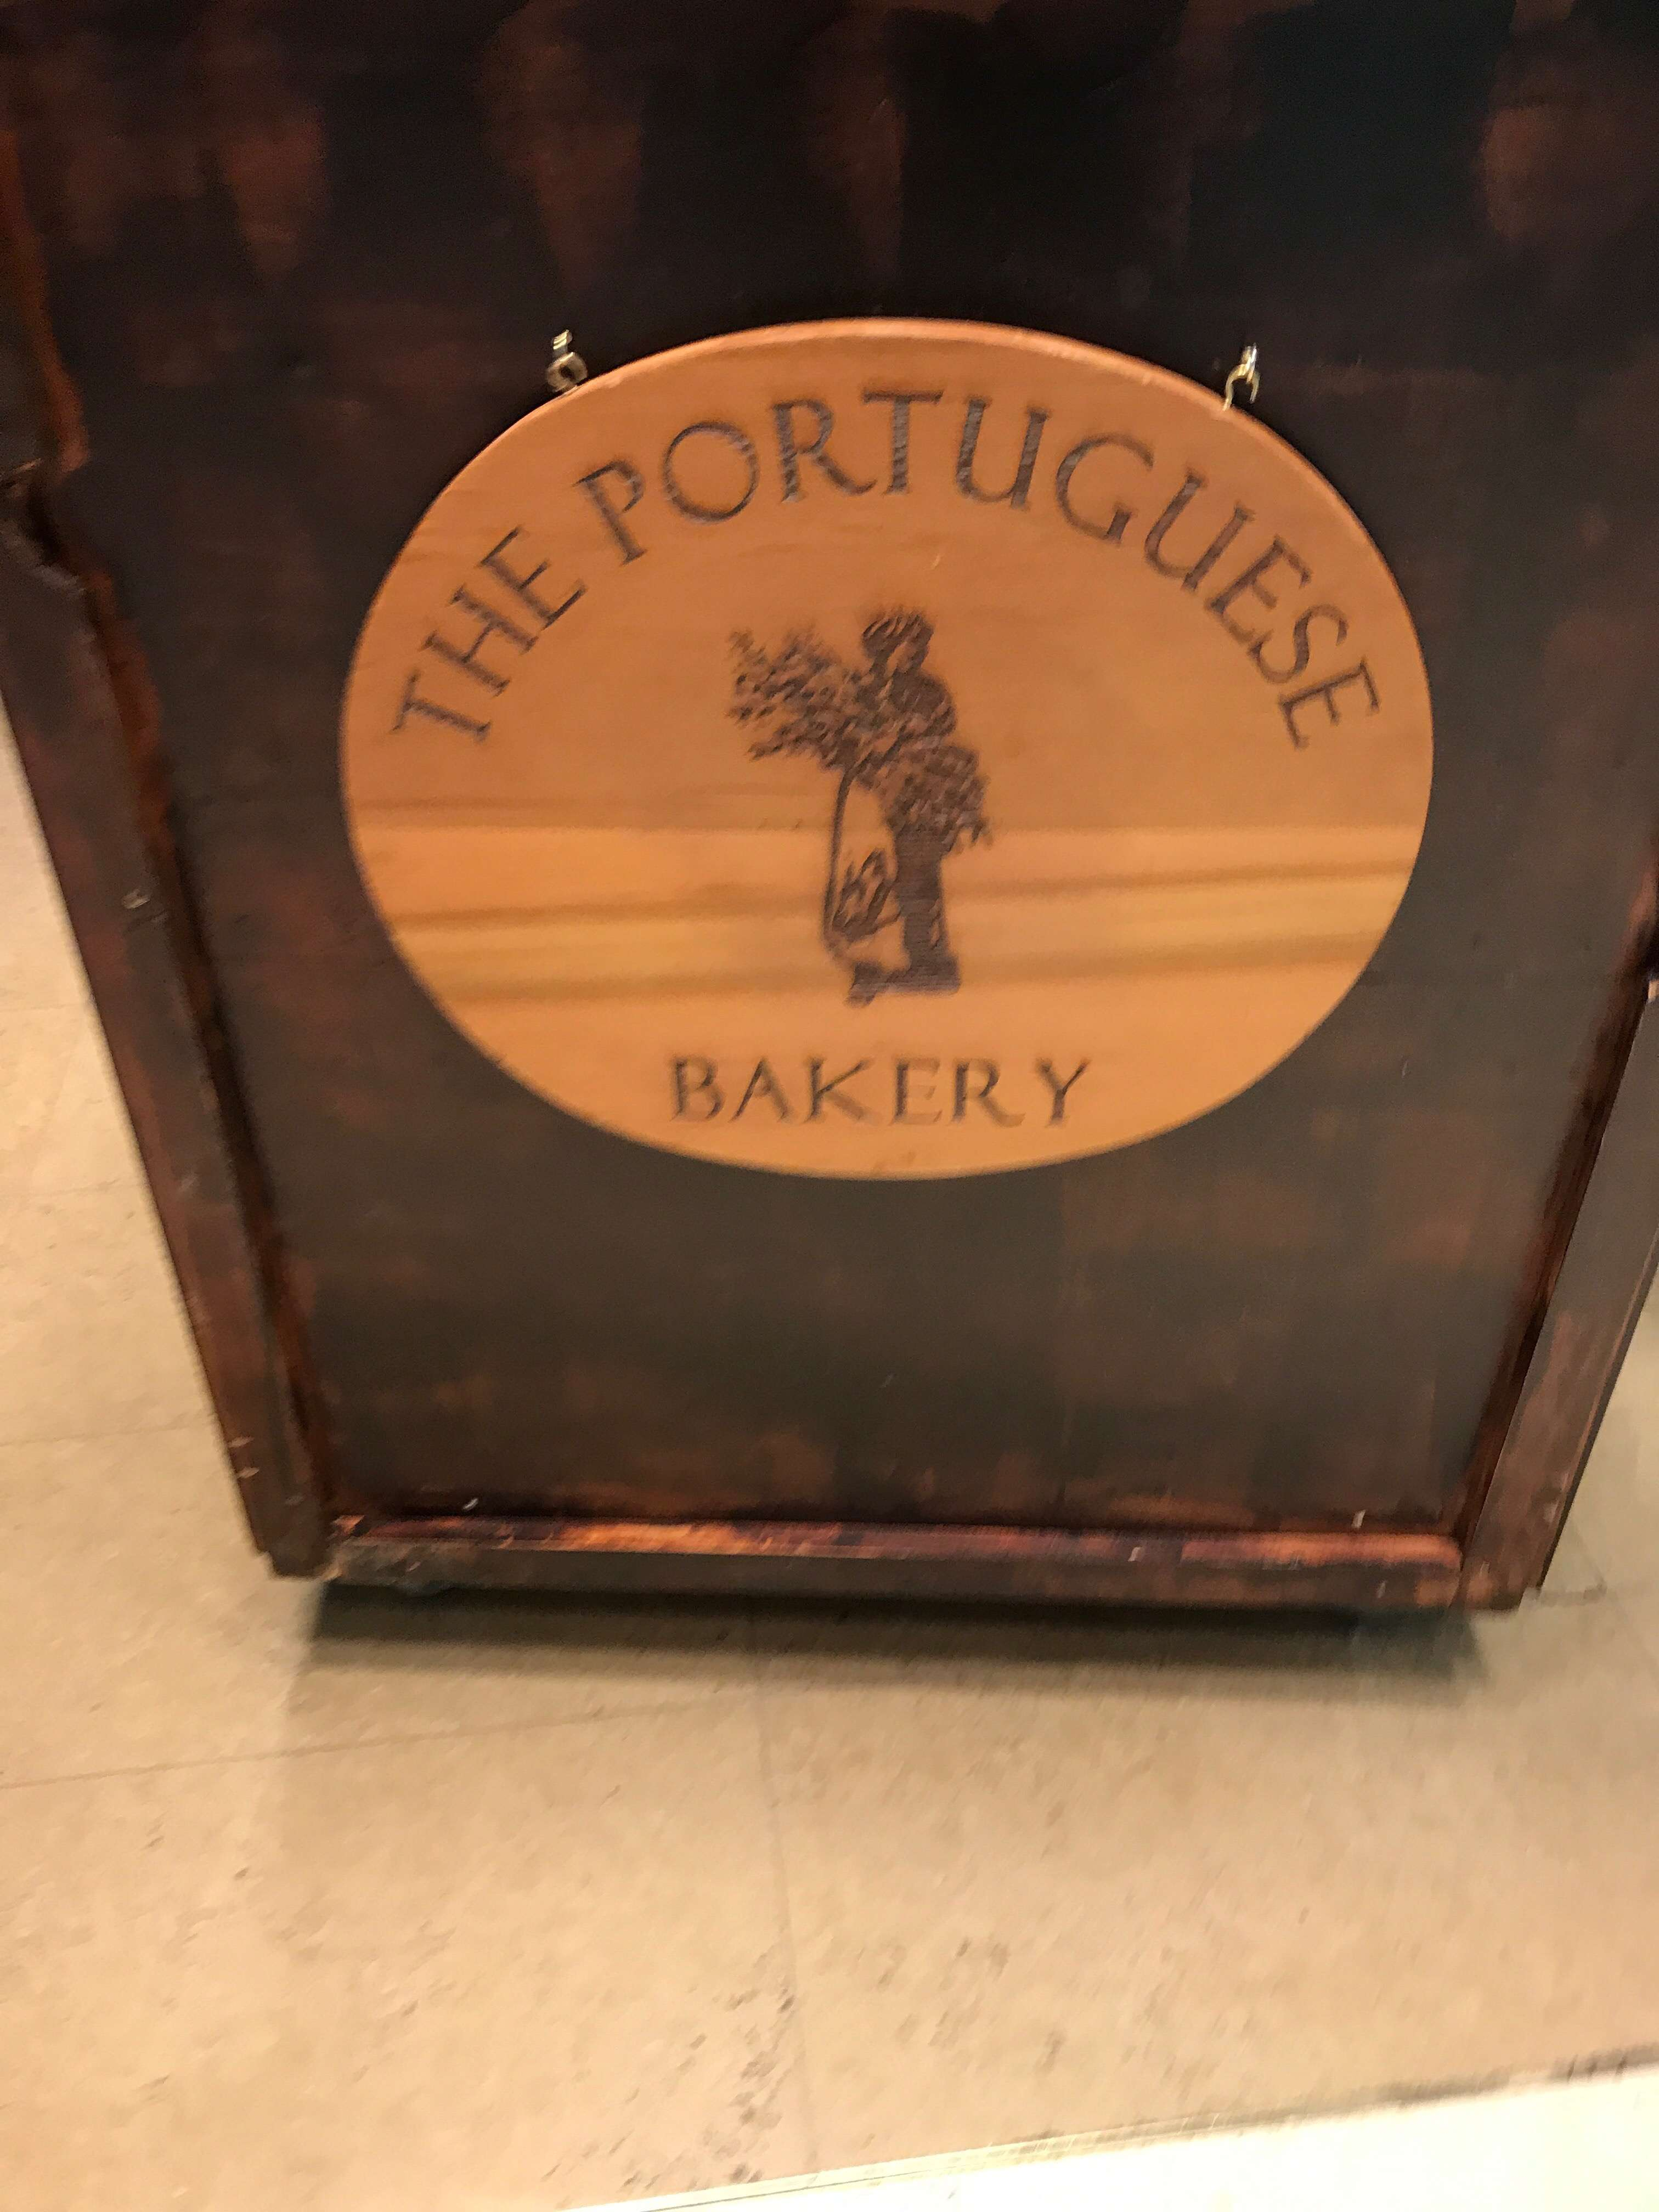 The Portuguese Bakery